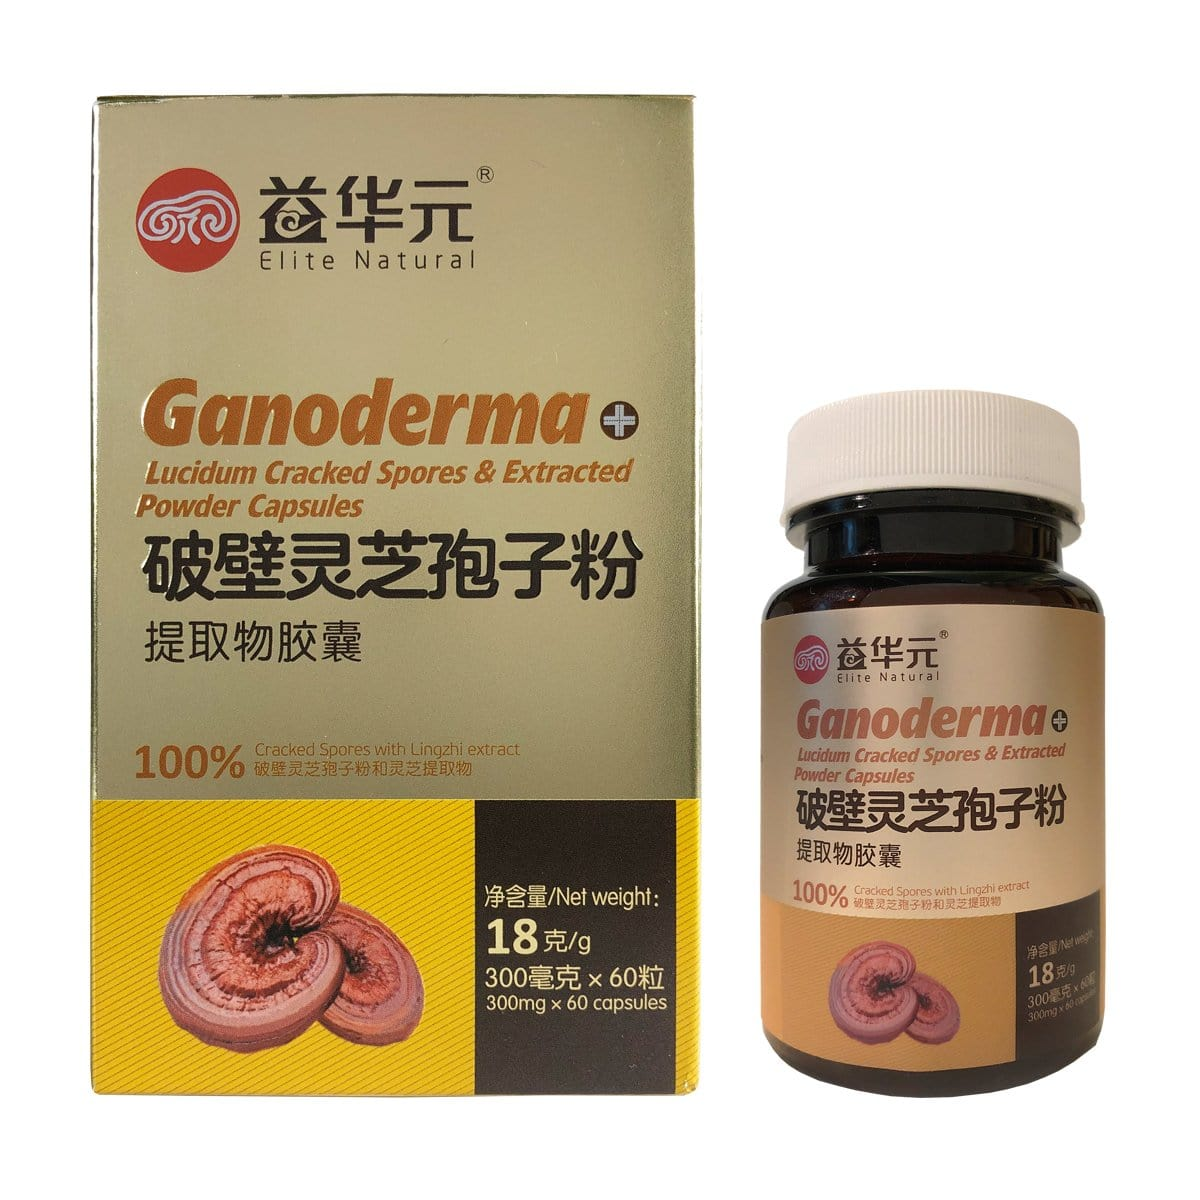 Elite Natural Ganoderma Lucidum crached spores capsule